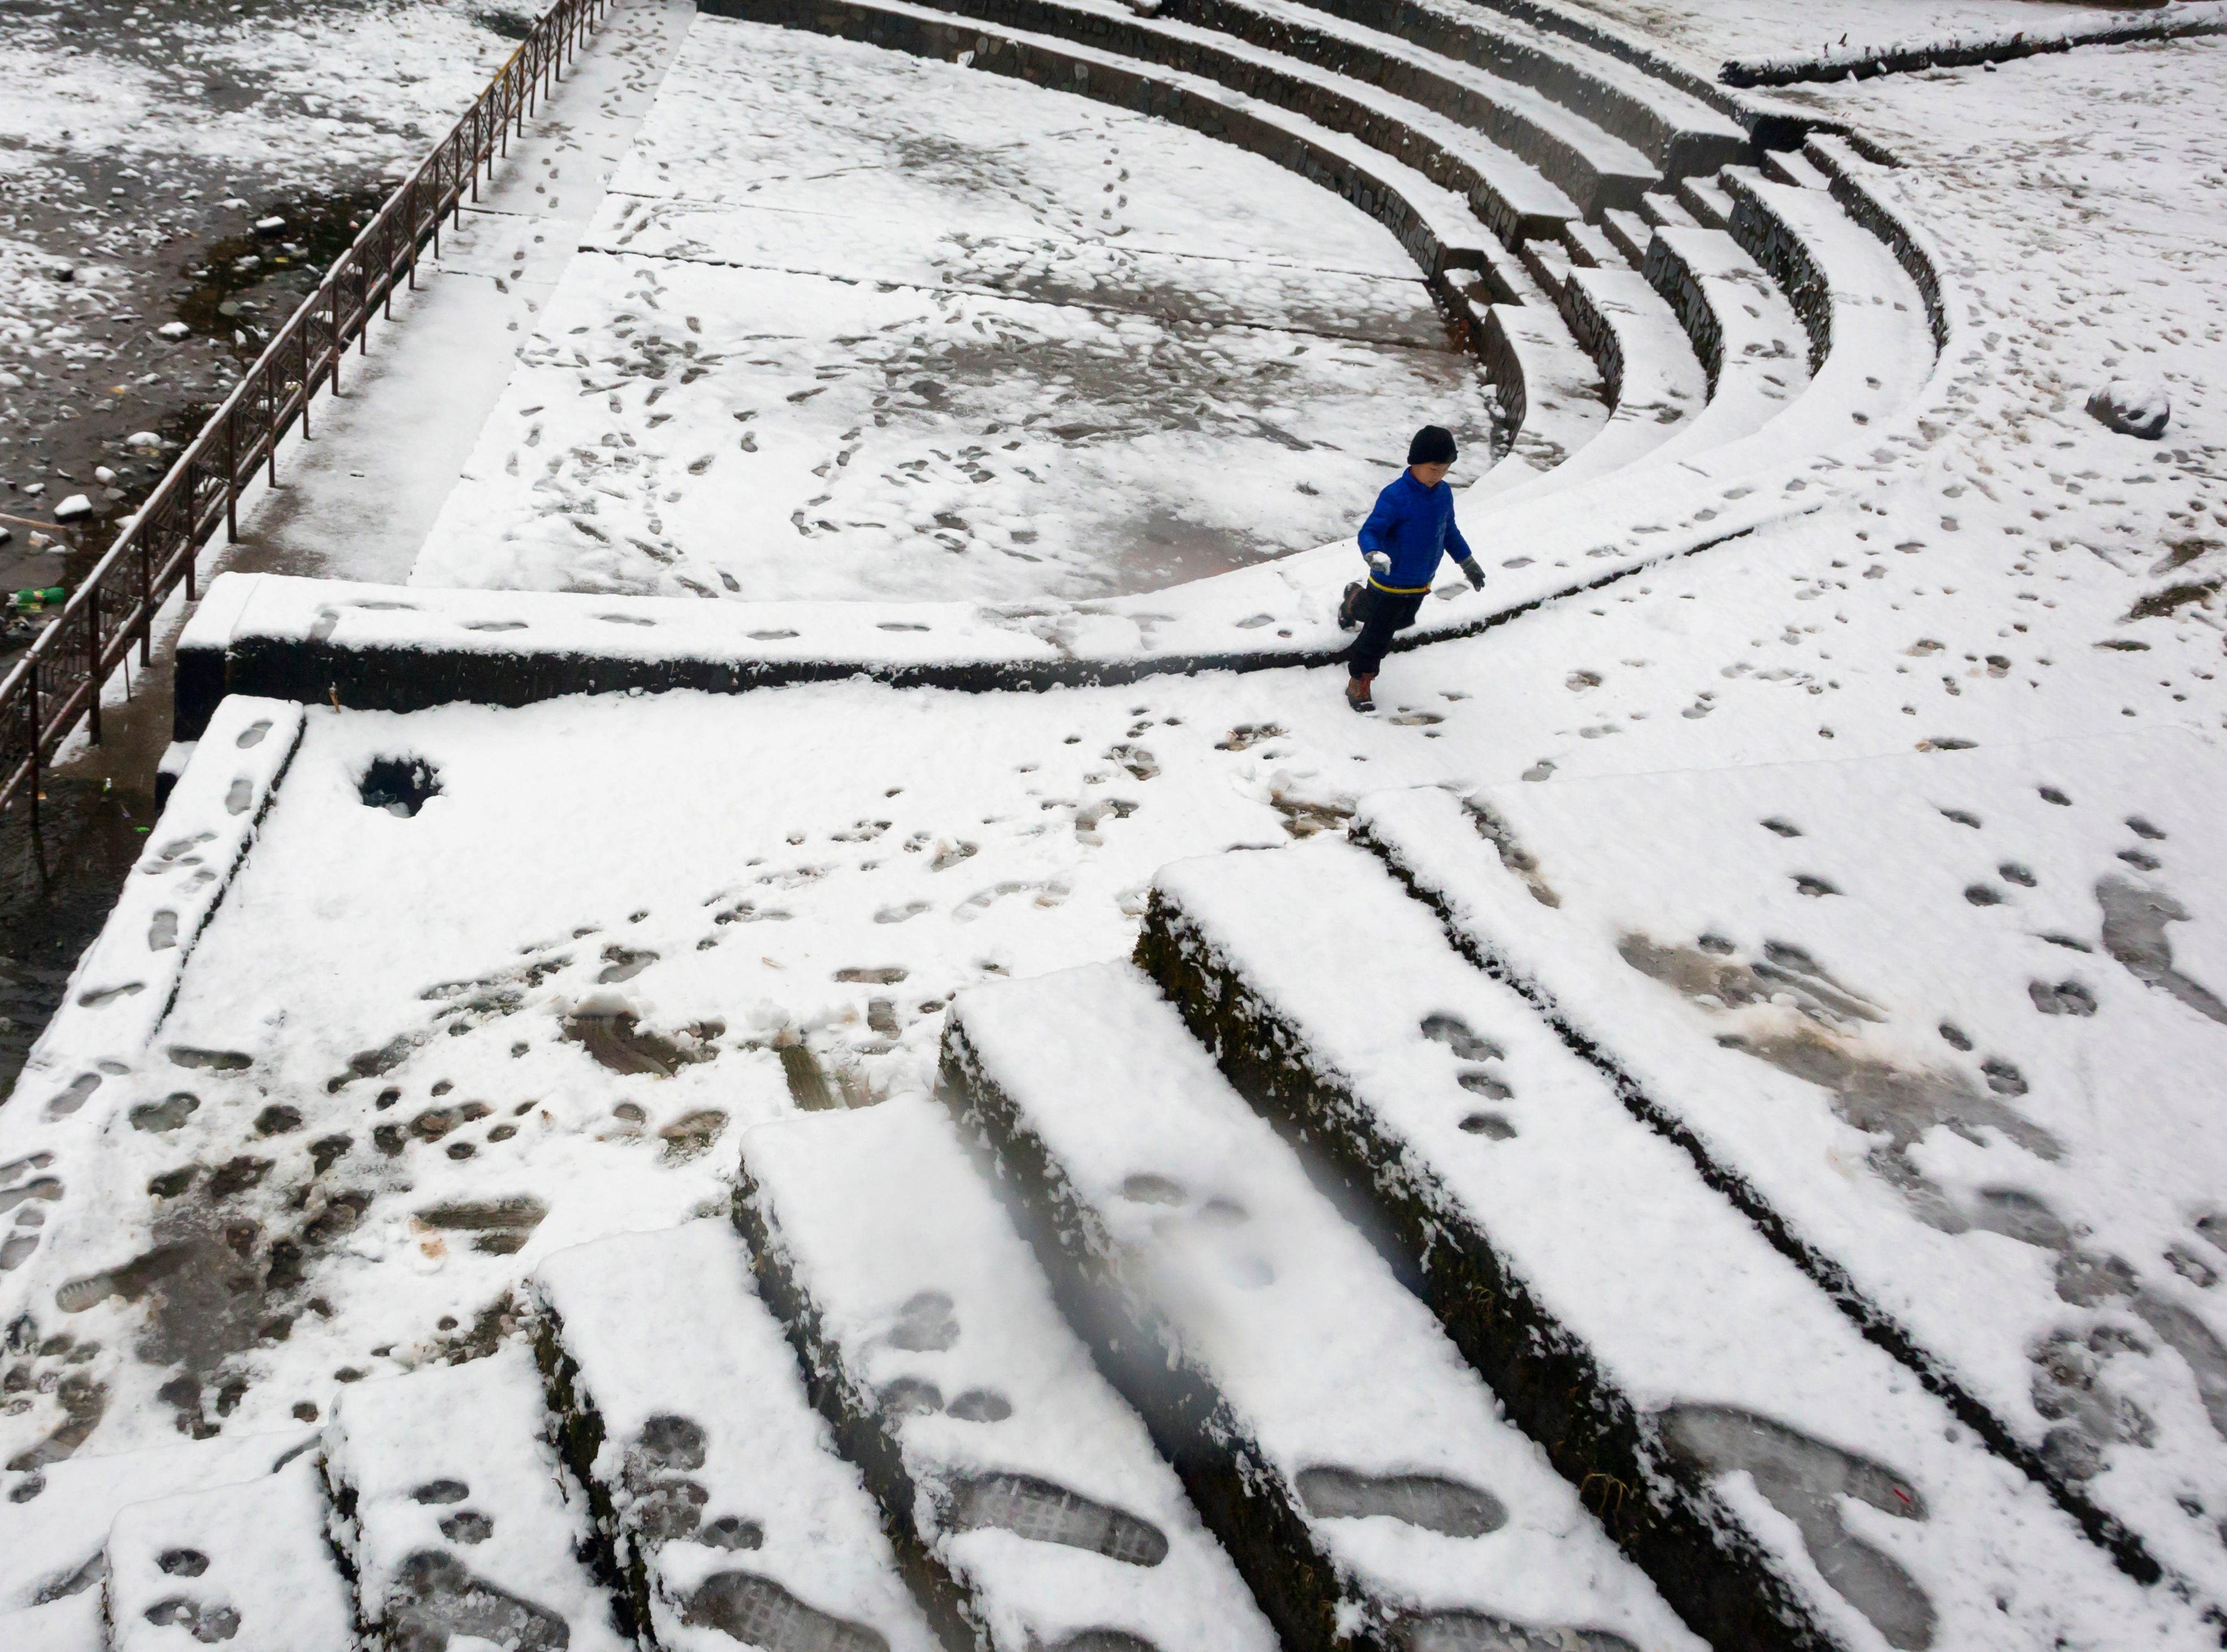 A young boy plays in snow in Dharmsala, India, Sunday, Jan. 6, 2019. The Himalayan region received season's first snowfall Sunday.